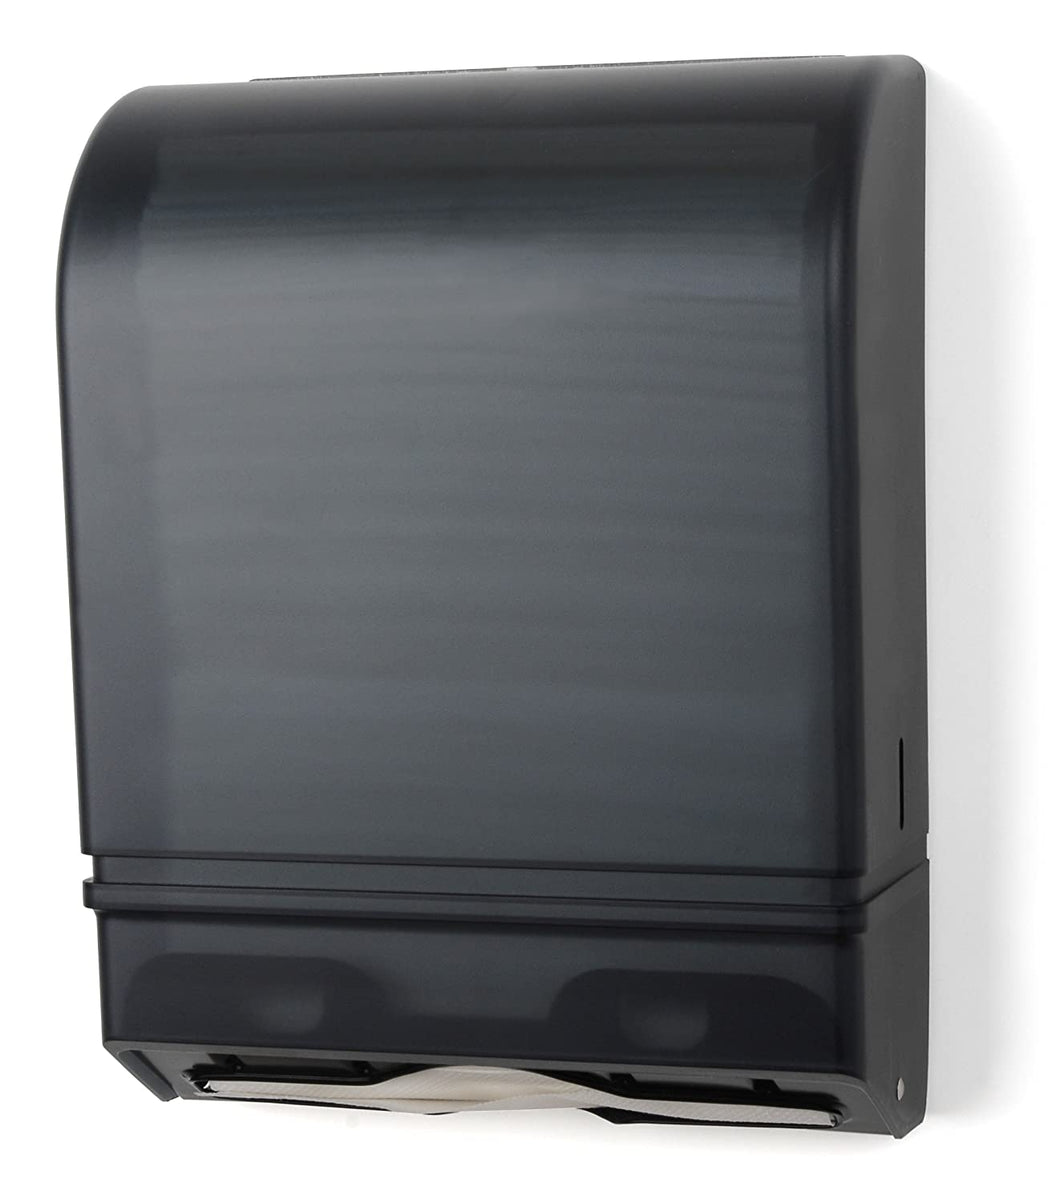 Palmer, Multifold/C-Fold Dark Translucent Towel Dispenser